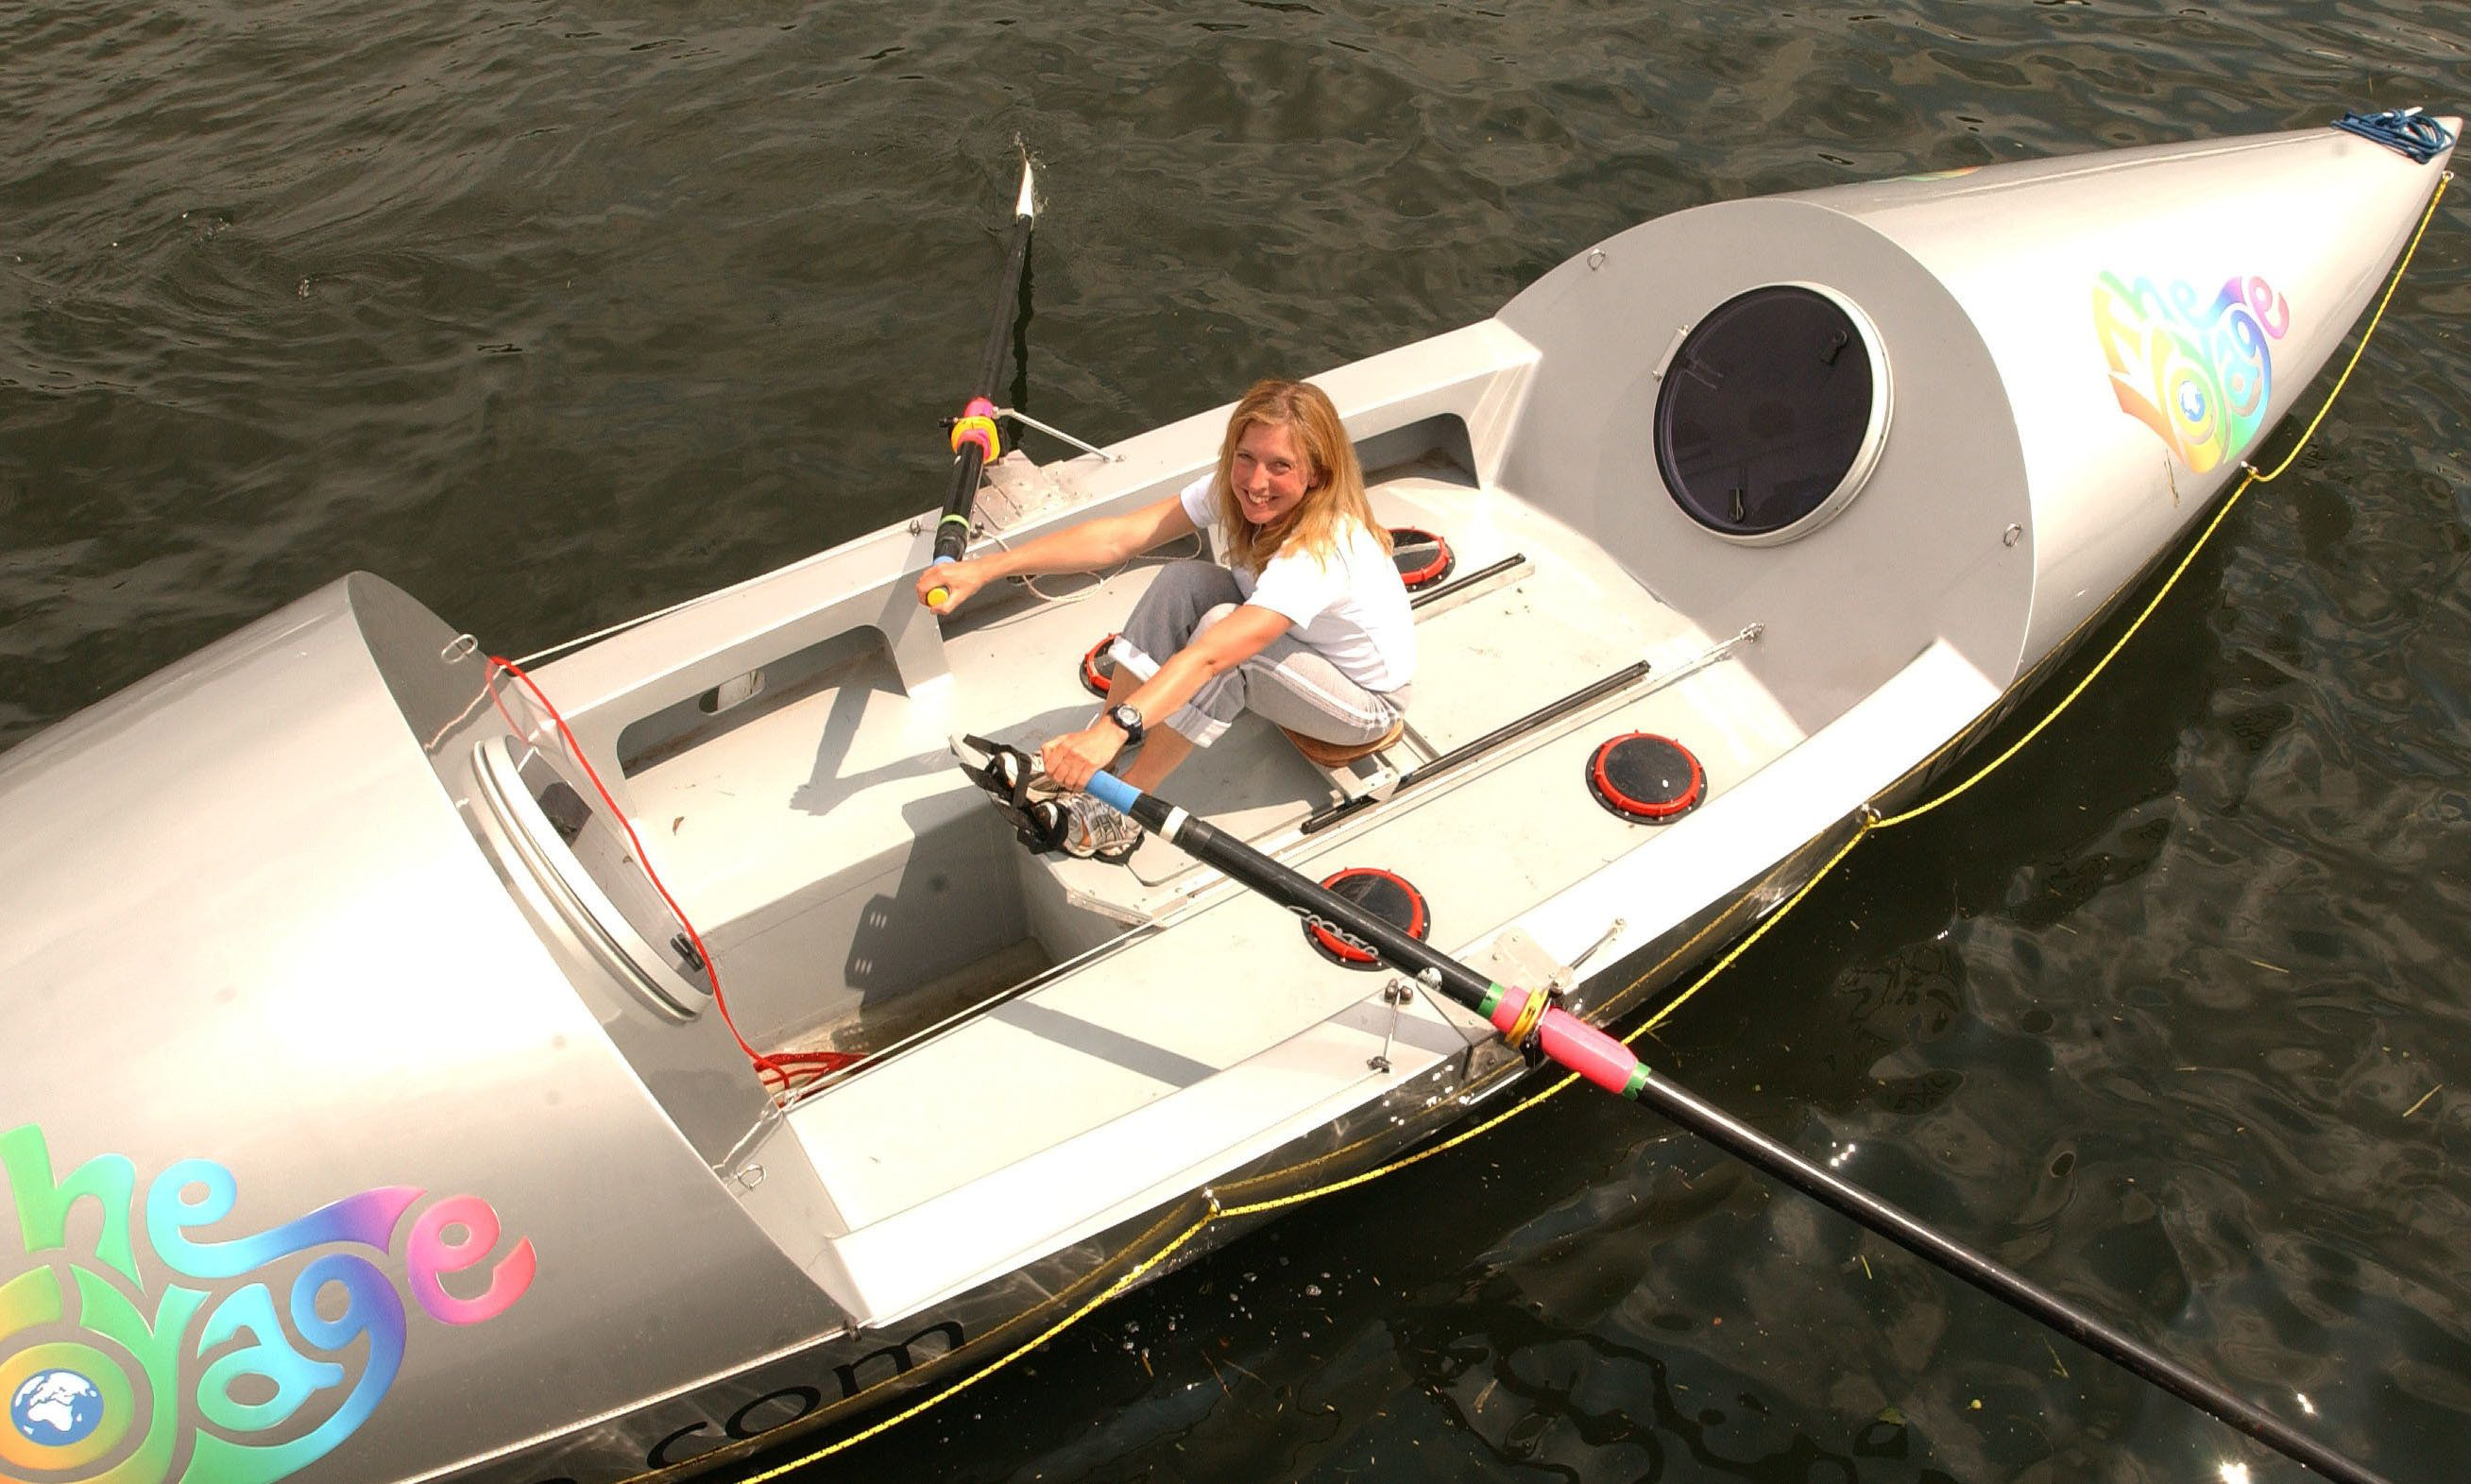 Roz Savage in June 2005, in her rowing boat at Henley-on-Thames, where she was practicing for her attempt to row across the Atlantic Ocean. She since has crossed both the Atlantic and Pacific, and plans to traverse the Indian Ocean in March.  (Photo by John Stillwell/MCT/MCT via Getty Images)